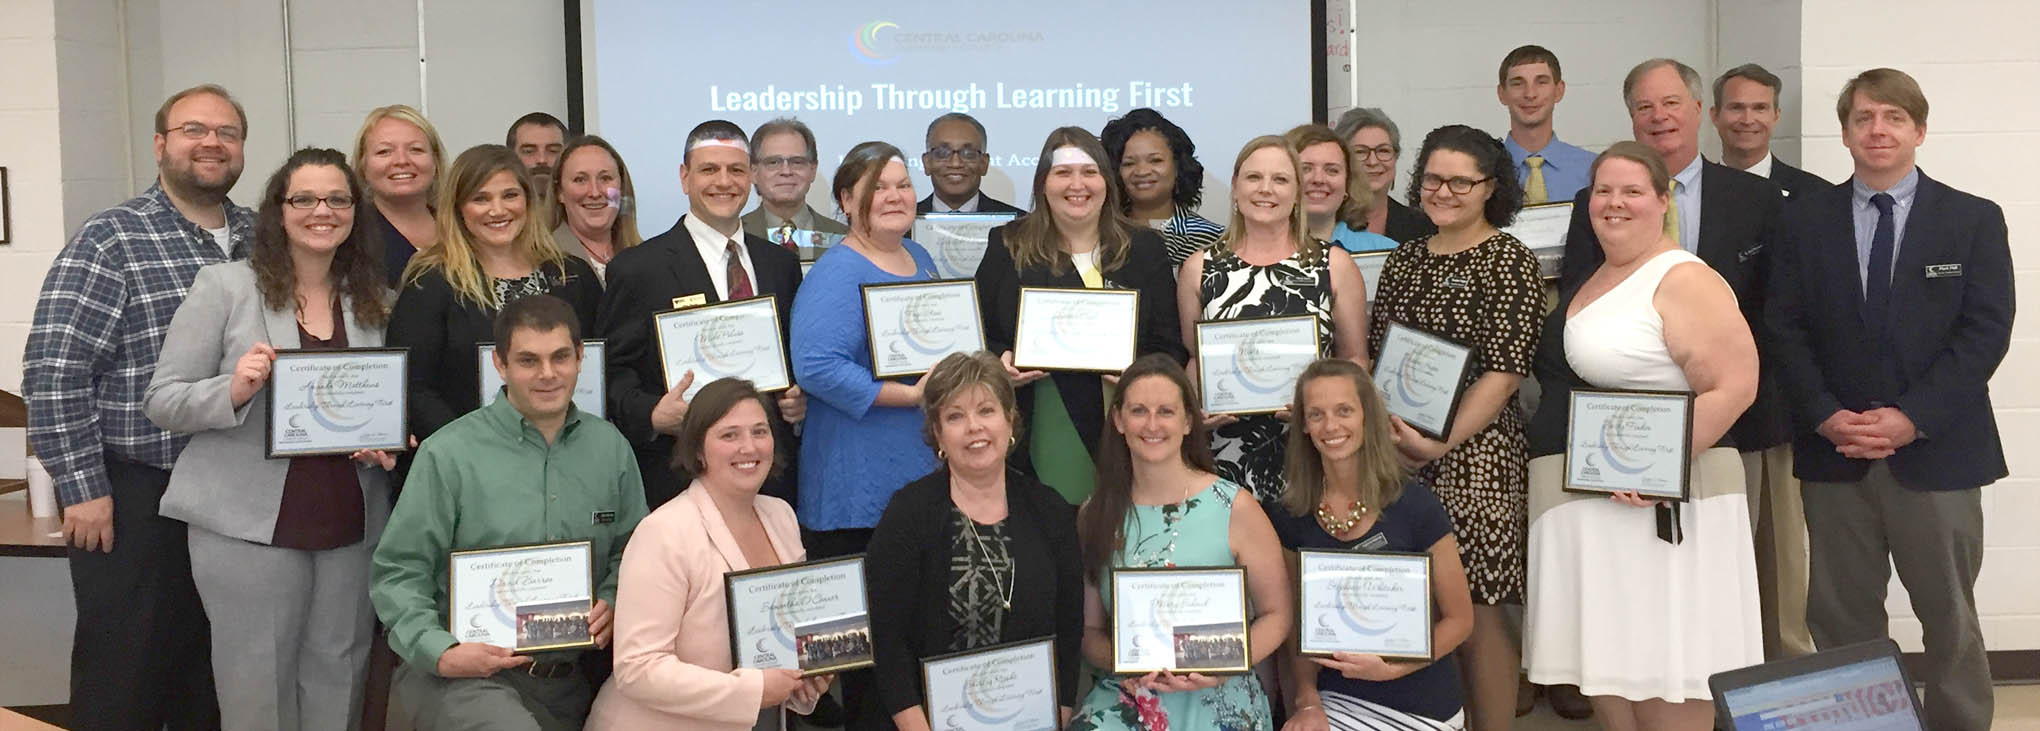 Click to enlarge,  The Central Carolina Community College 2016-2017 Leadership through Learning First Cohort has successfully completed a year-long program, which equips employees with opportunities to enhance their skills, knowledge, and abilities by providing them with resources and networking opportunities to ensure their success. During its commencement, the group shared with members of the President's Council two projects it developed to increase student access from the college's Strategic Plan. Pictured are, left to right: back row, Dr. Brian Merritt (Vice President of Student Learning), Joli McDonald, John Ainsworth, John LaVere, Derrick Wright, Rosalind Cross, Cricket Jones, Jonathan Hockaday, Dr. T. Eston Marchant (President), Ken Hoyle (Vice President of Student Services), and Mark Hall (Chatham Provost); middle row, Amanda Matthews, Amber Thomas, Maryann Aucompaugh, Mike Peluso, Faye Stone, Diana Cagle, Misty Davin, Amy Whitmer, Teradee Hagan, and Becky Finken; front row, David Barron, Samantha O'Connor, Shirley Rijkse, Mary Schmid, and Stephanie Whitaker. Not pictured is Latasha McIver.